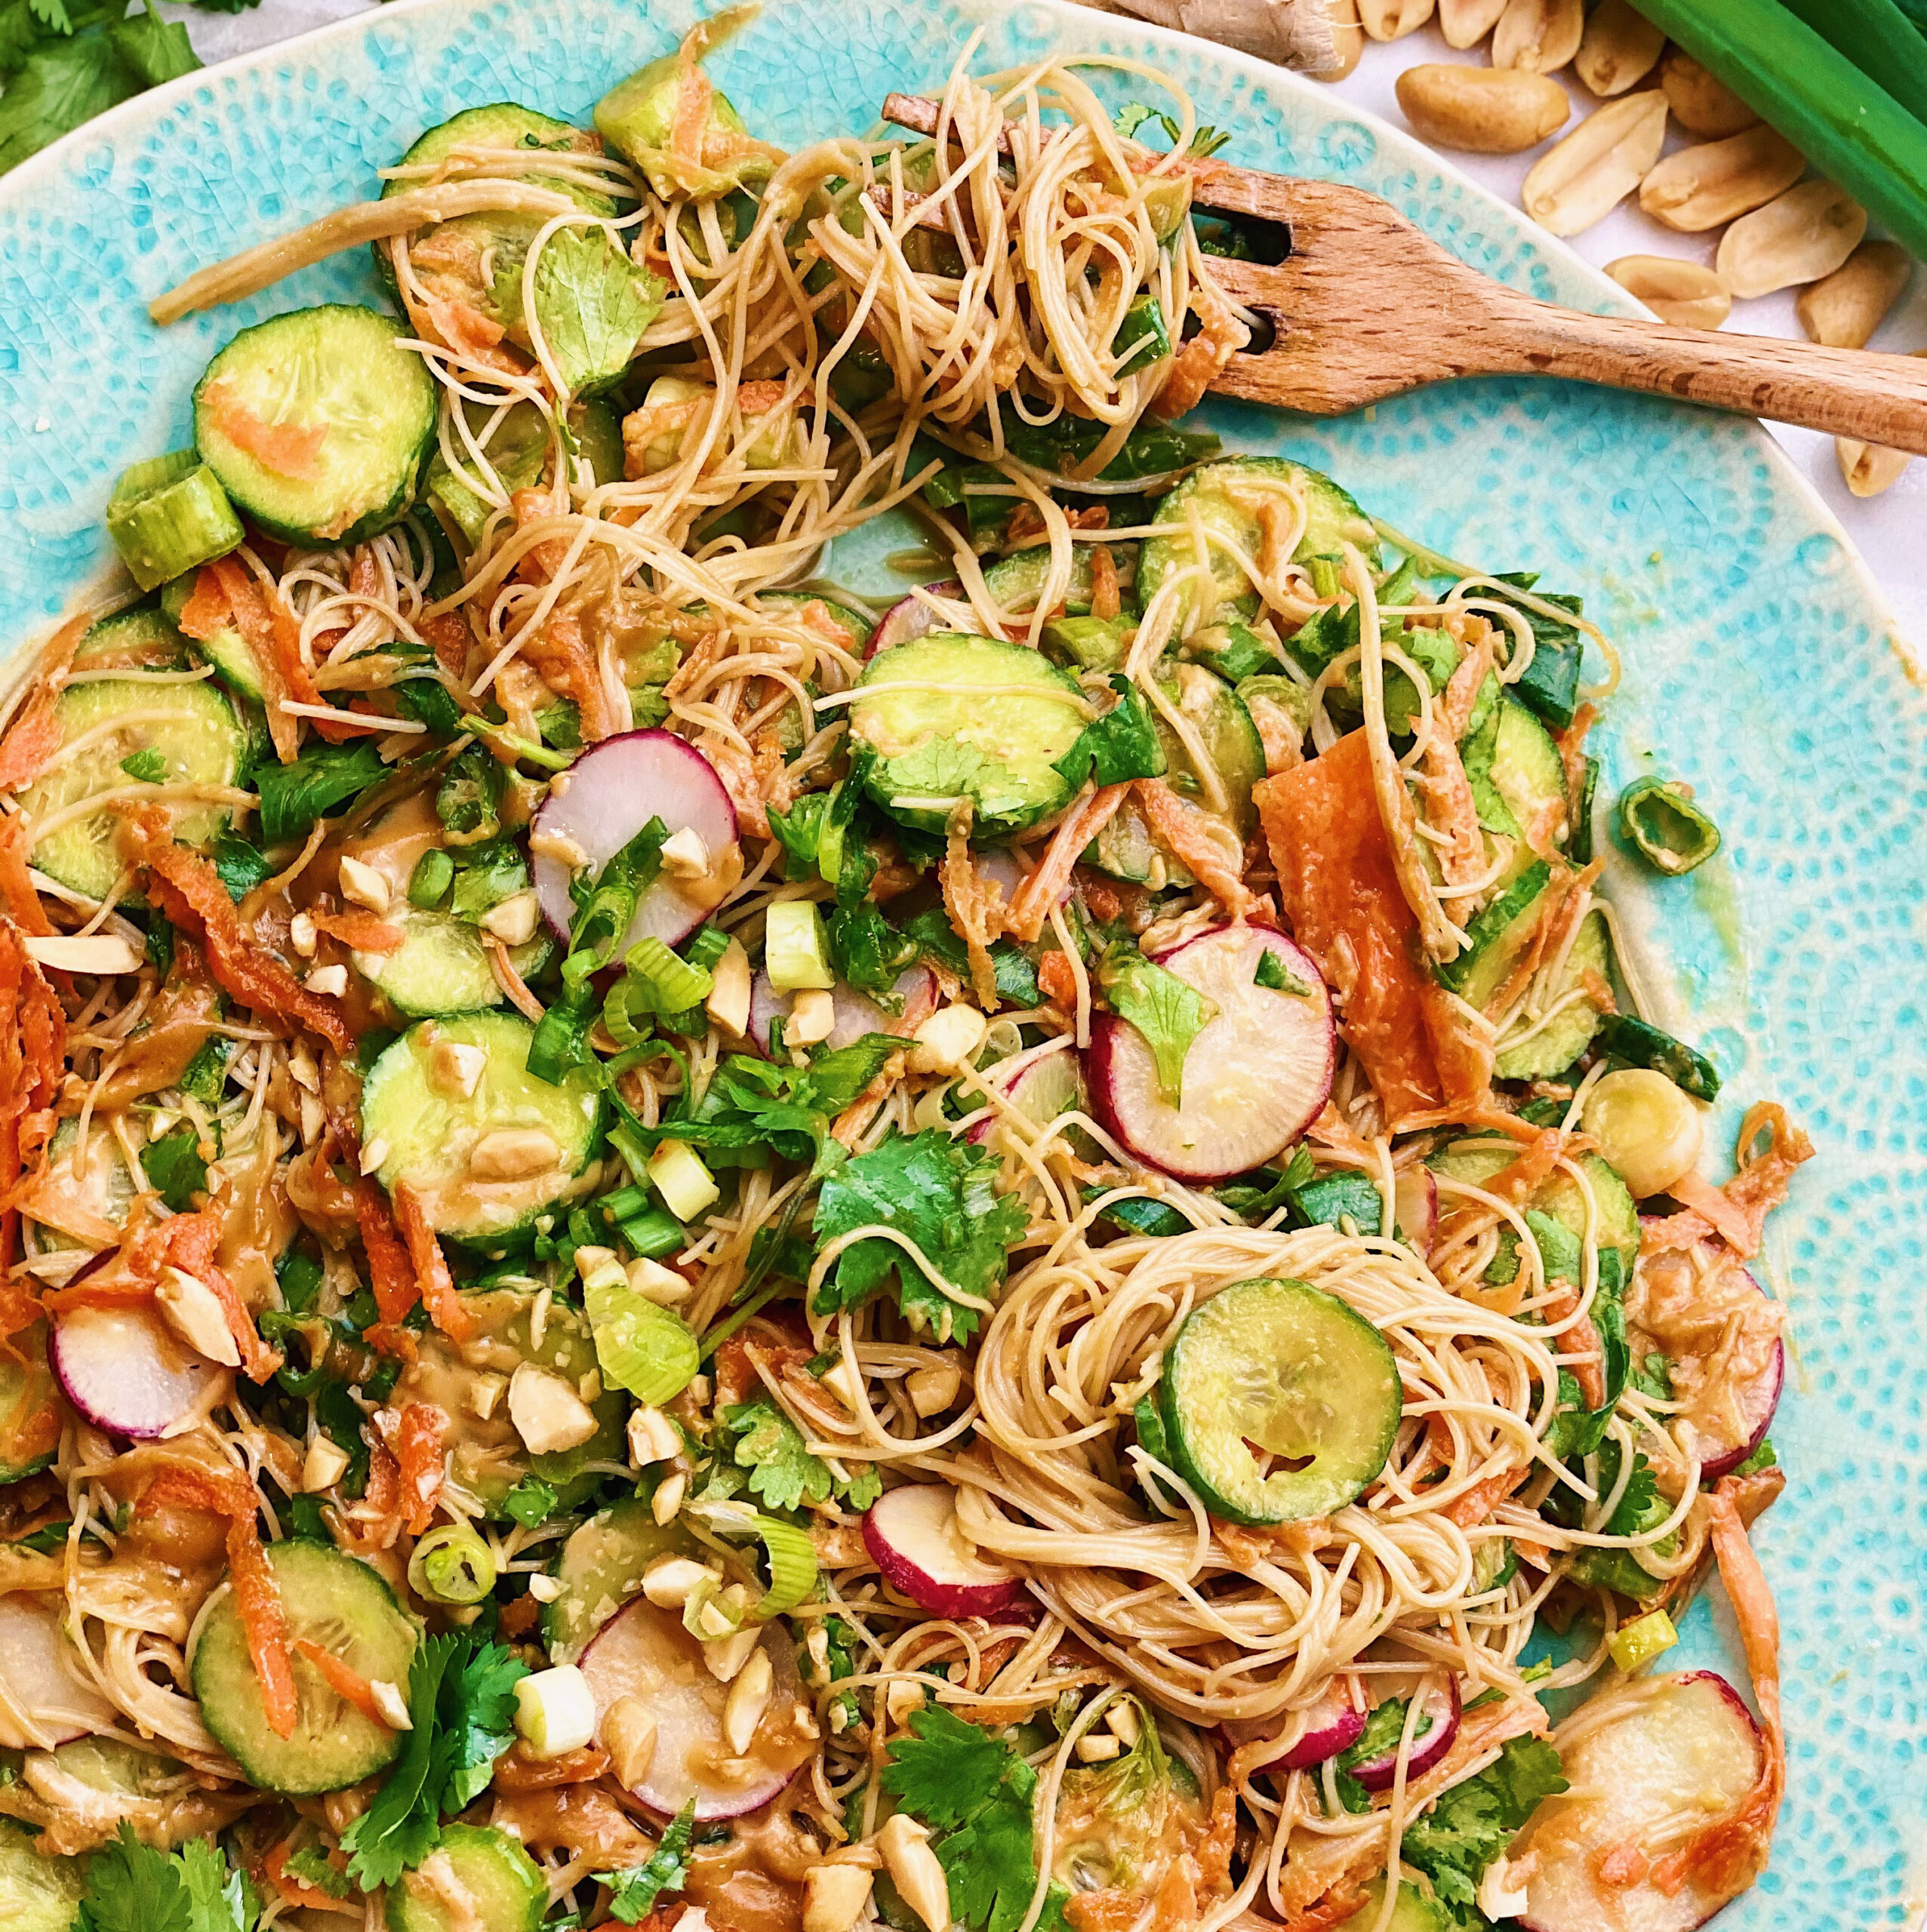 Southeast Asian Inspired Peanut Noodle Salad